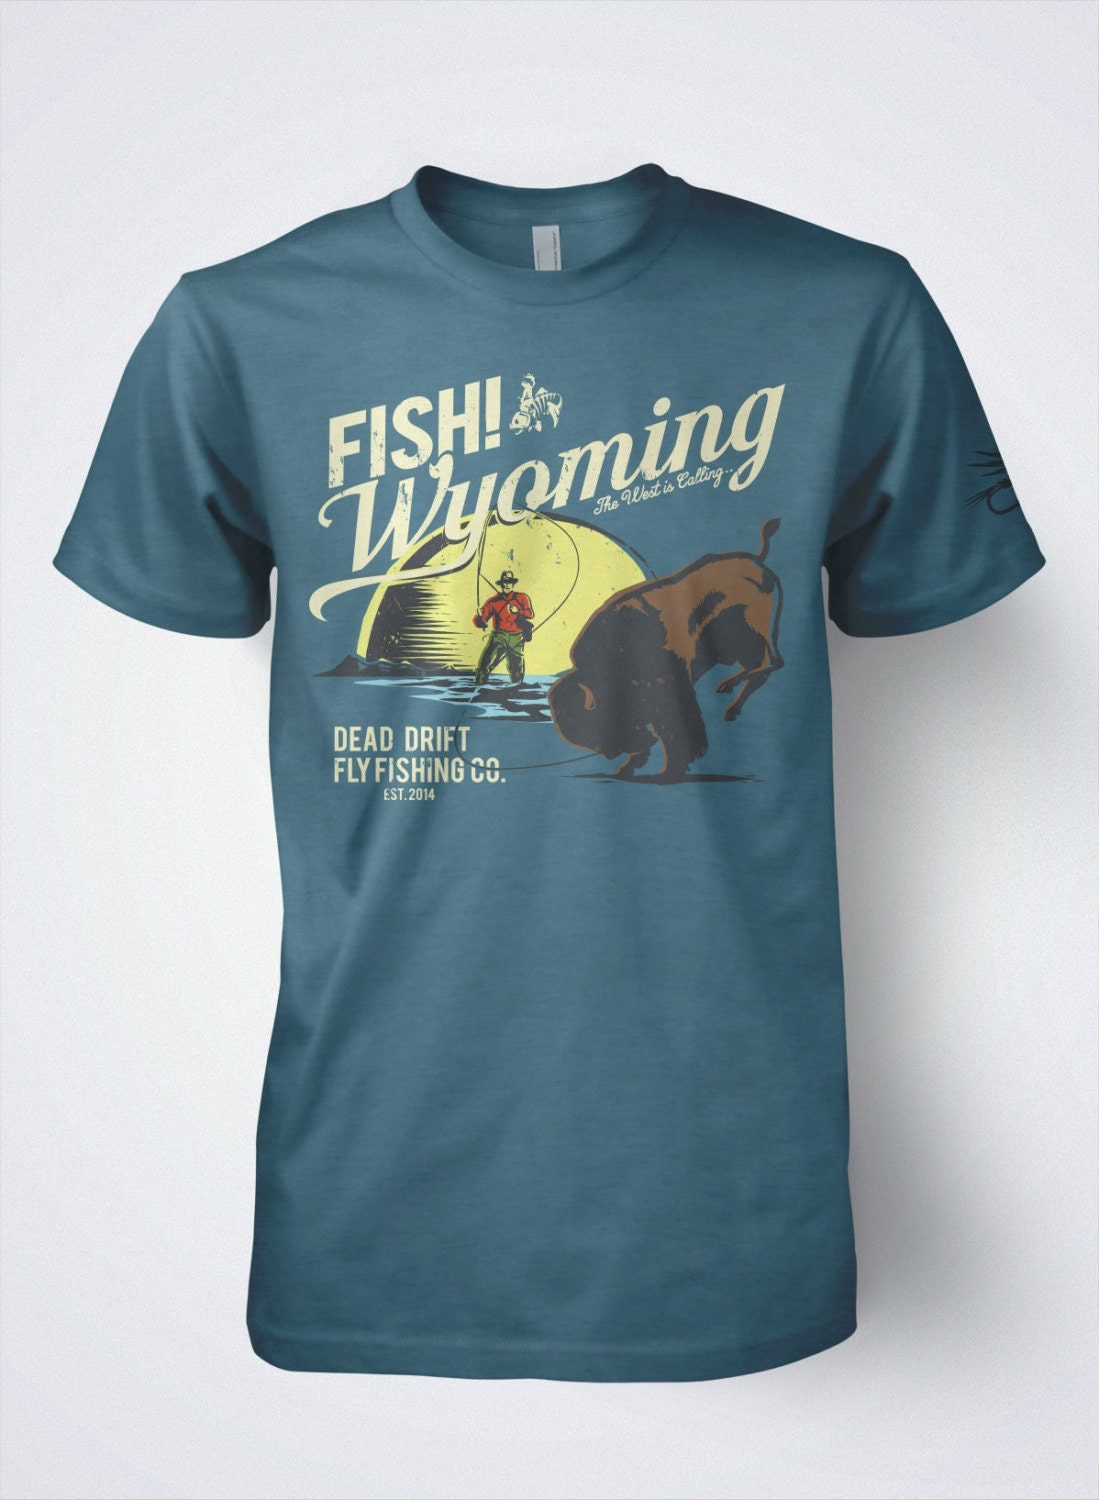 Fly fishing t shirts fish wyoming by dead drift fly fishing Fishing t shirts